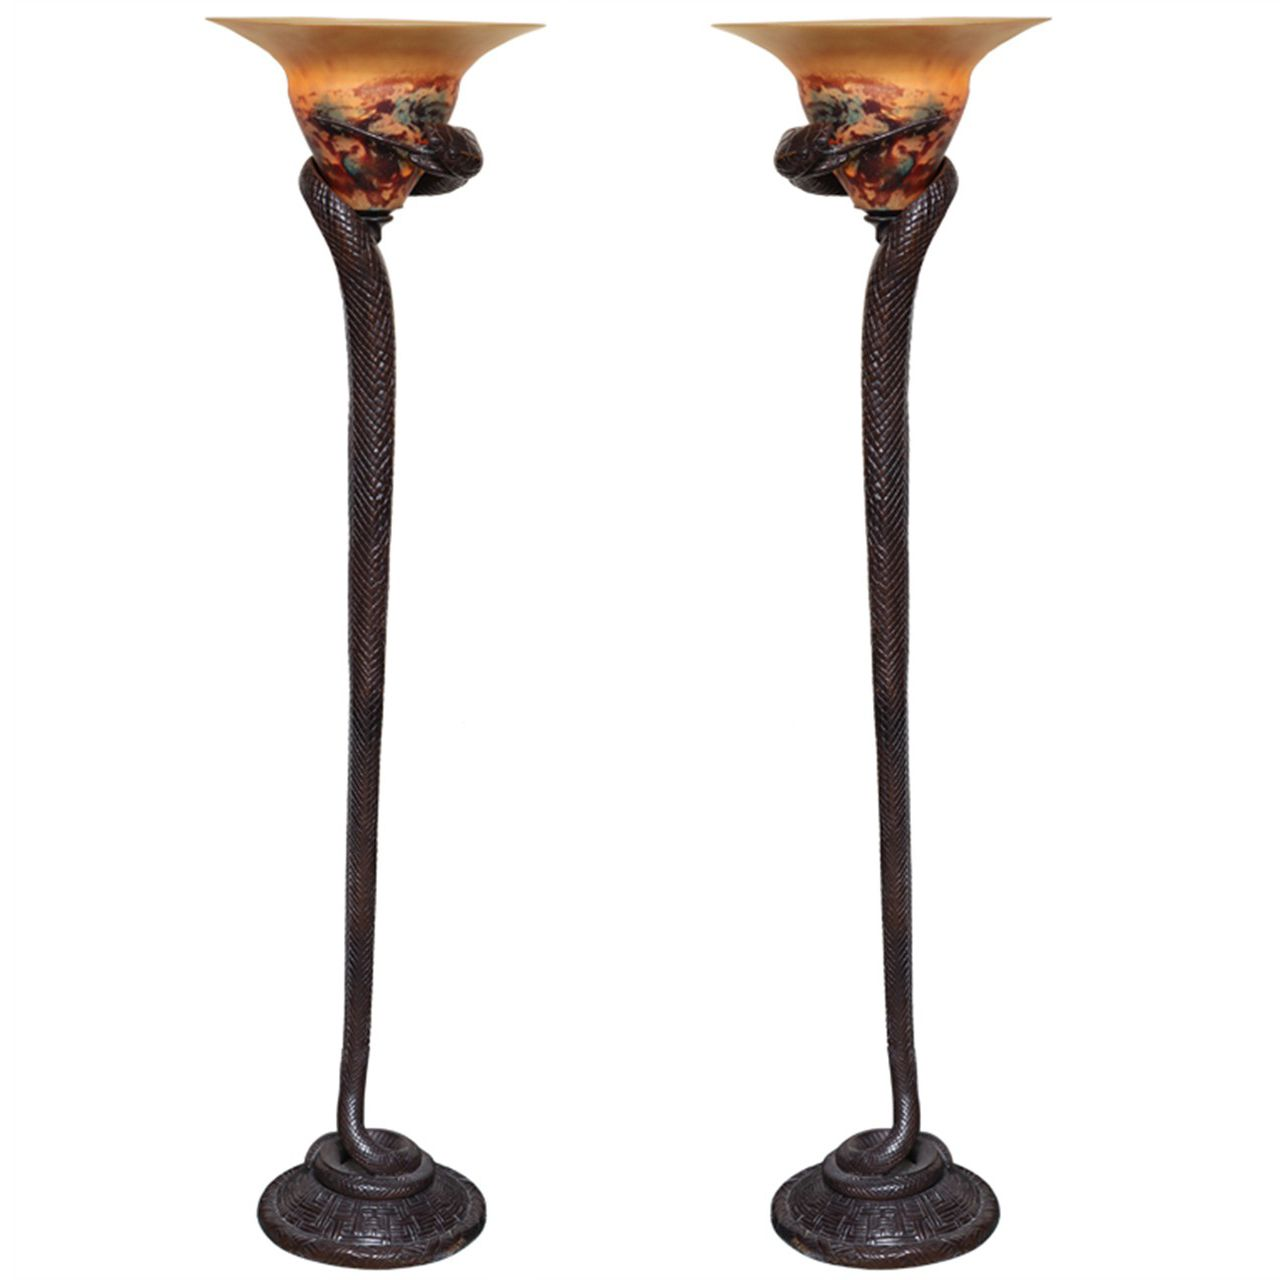 Unique lamps for sale - Pair Of Art Deco Style Bronze And Art Glass Snake Form Floor Lamps From